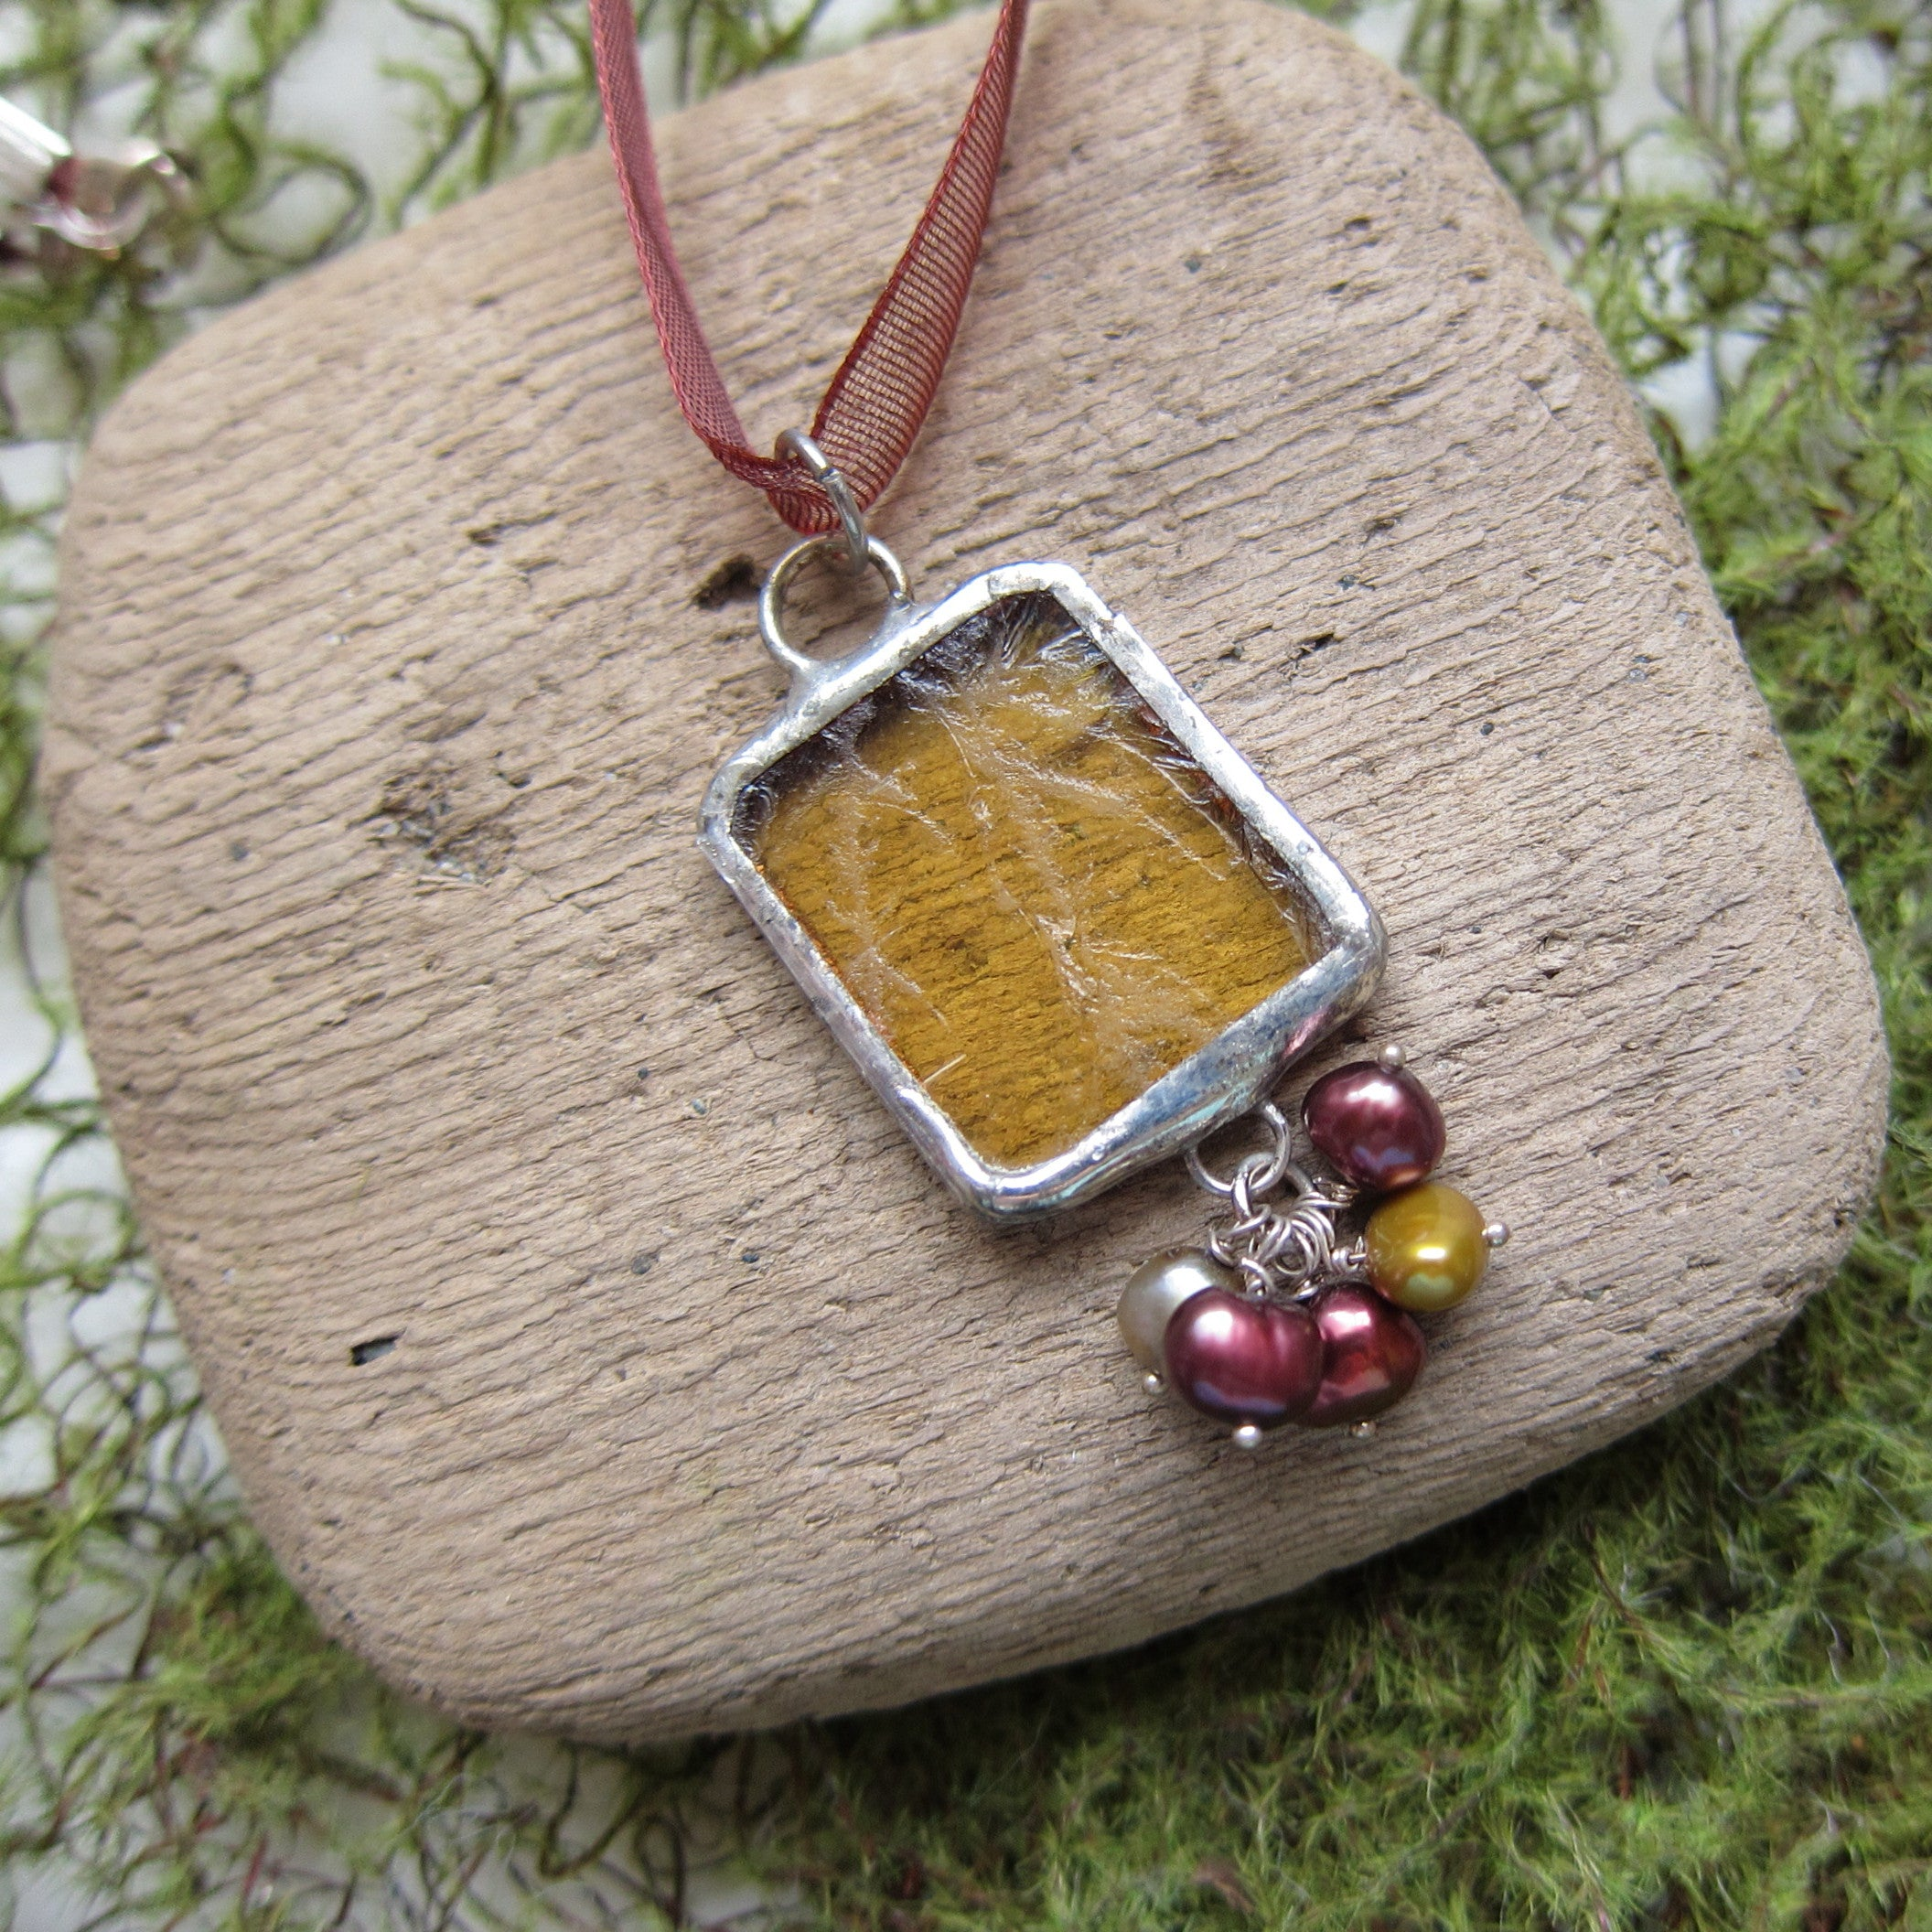 Yellow stained glass pendant necklace with freshwater pearls